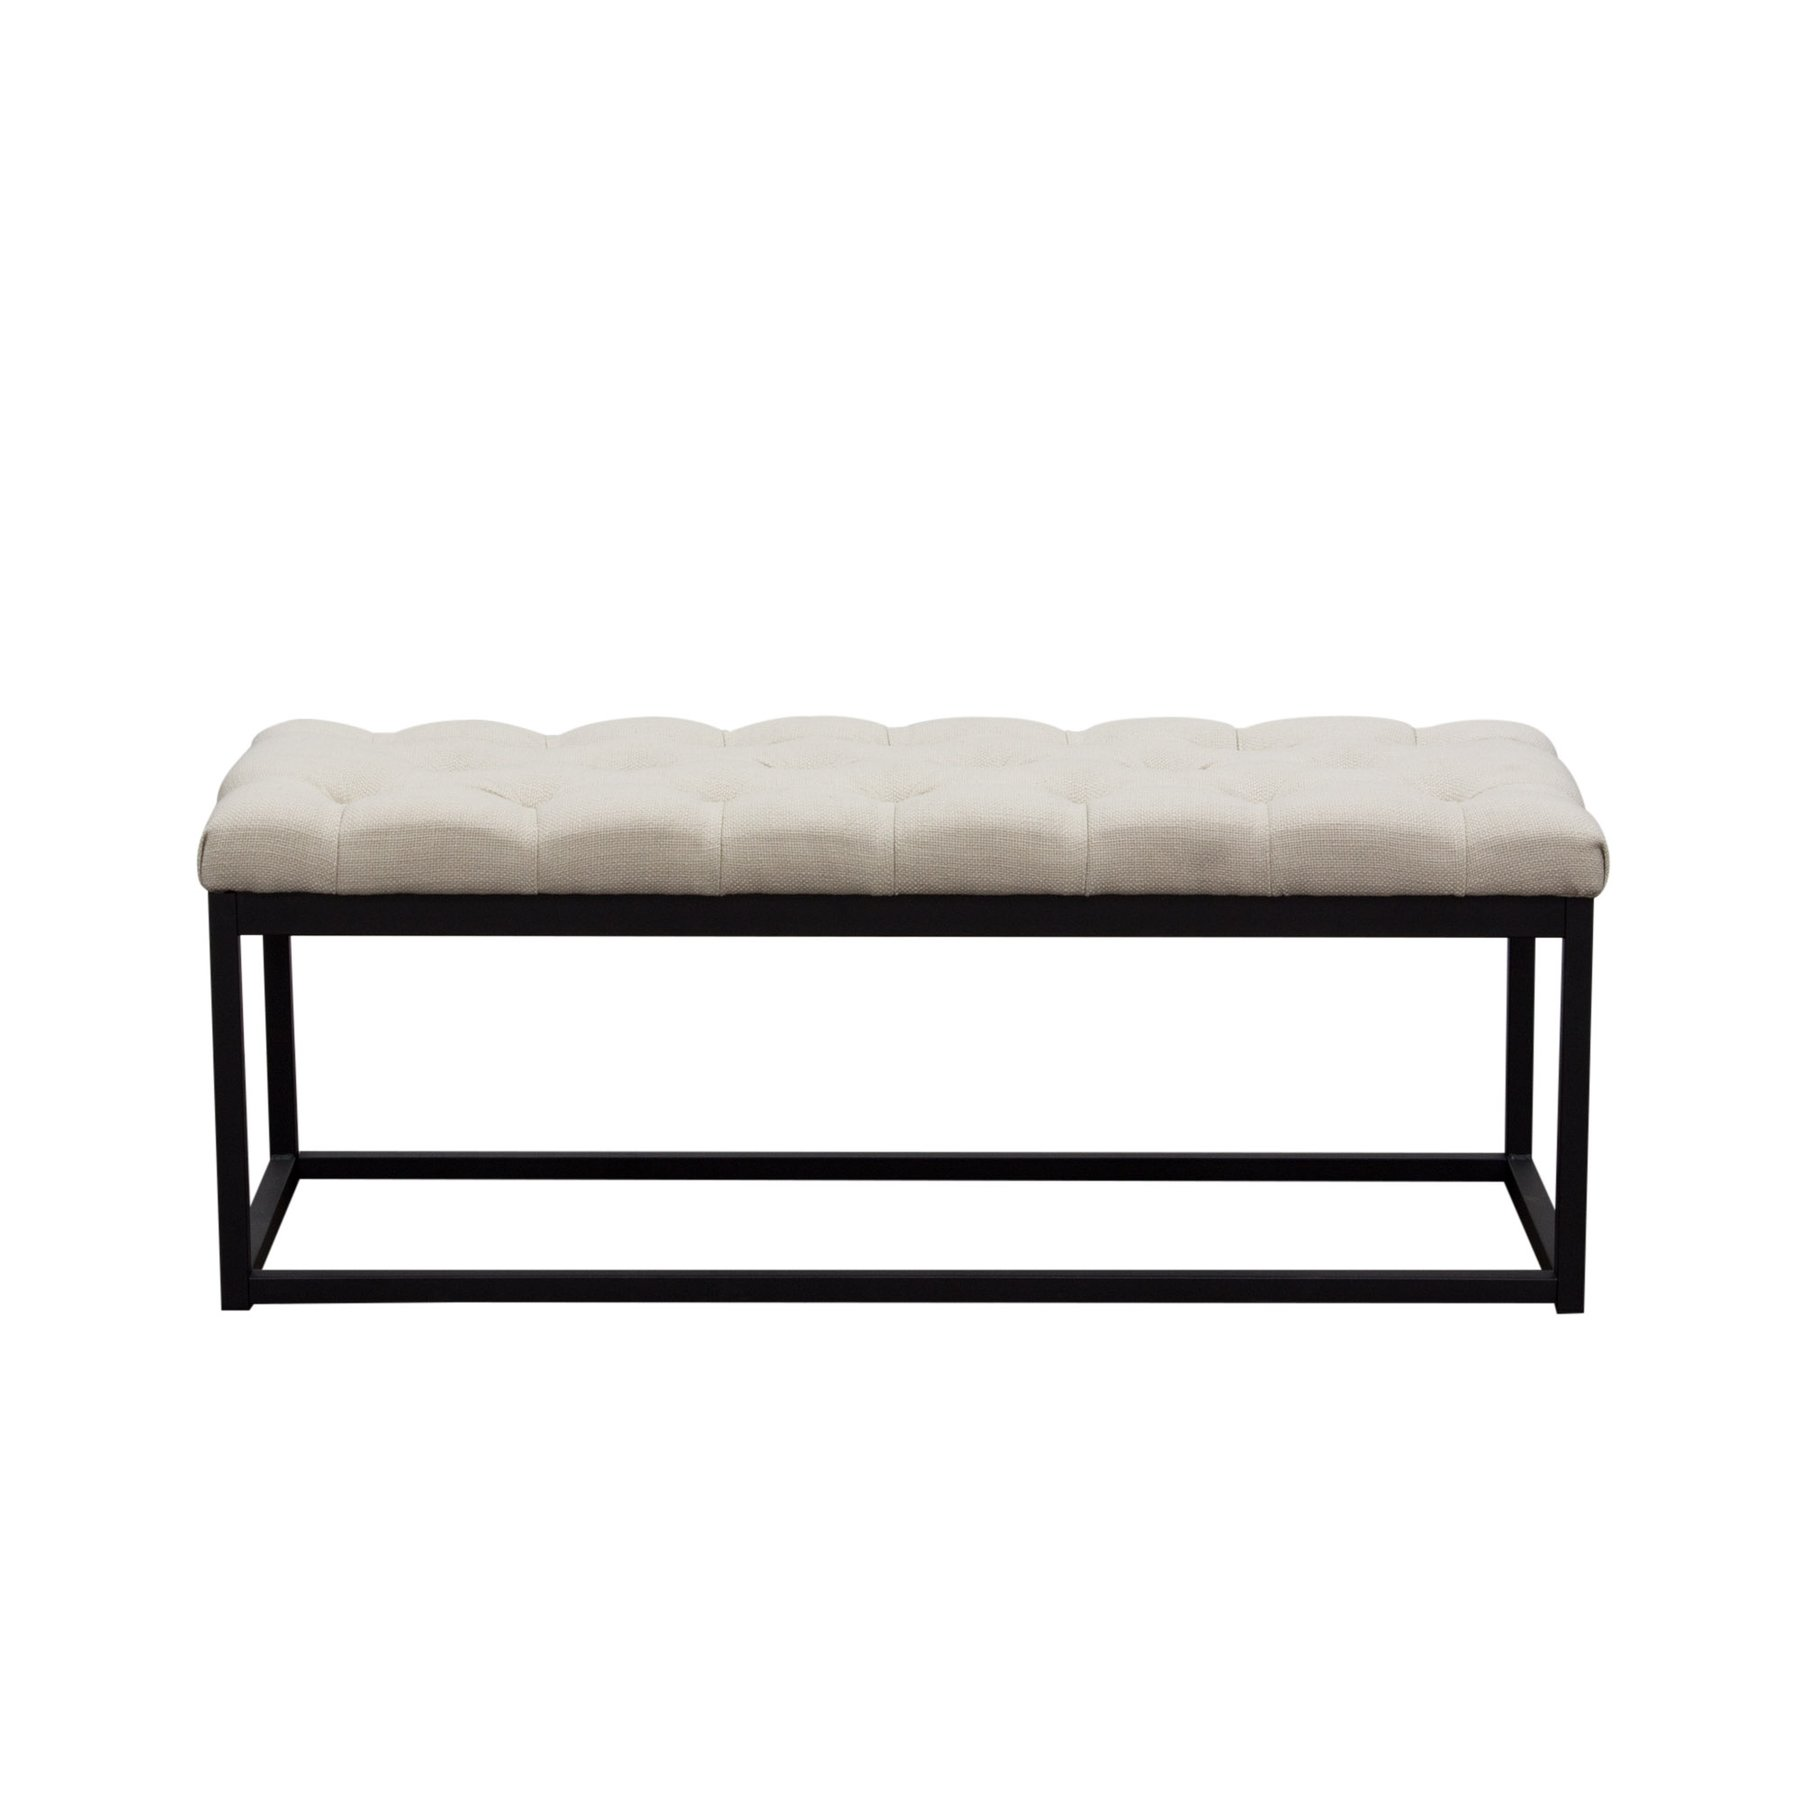 mateo black metal small linen tufted bench desert sand mateobessd signy drum accent table with marble top tap pinch zoom inch end glass patio wood keter cool bar apothecary chest